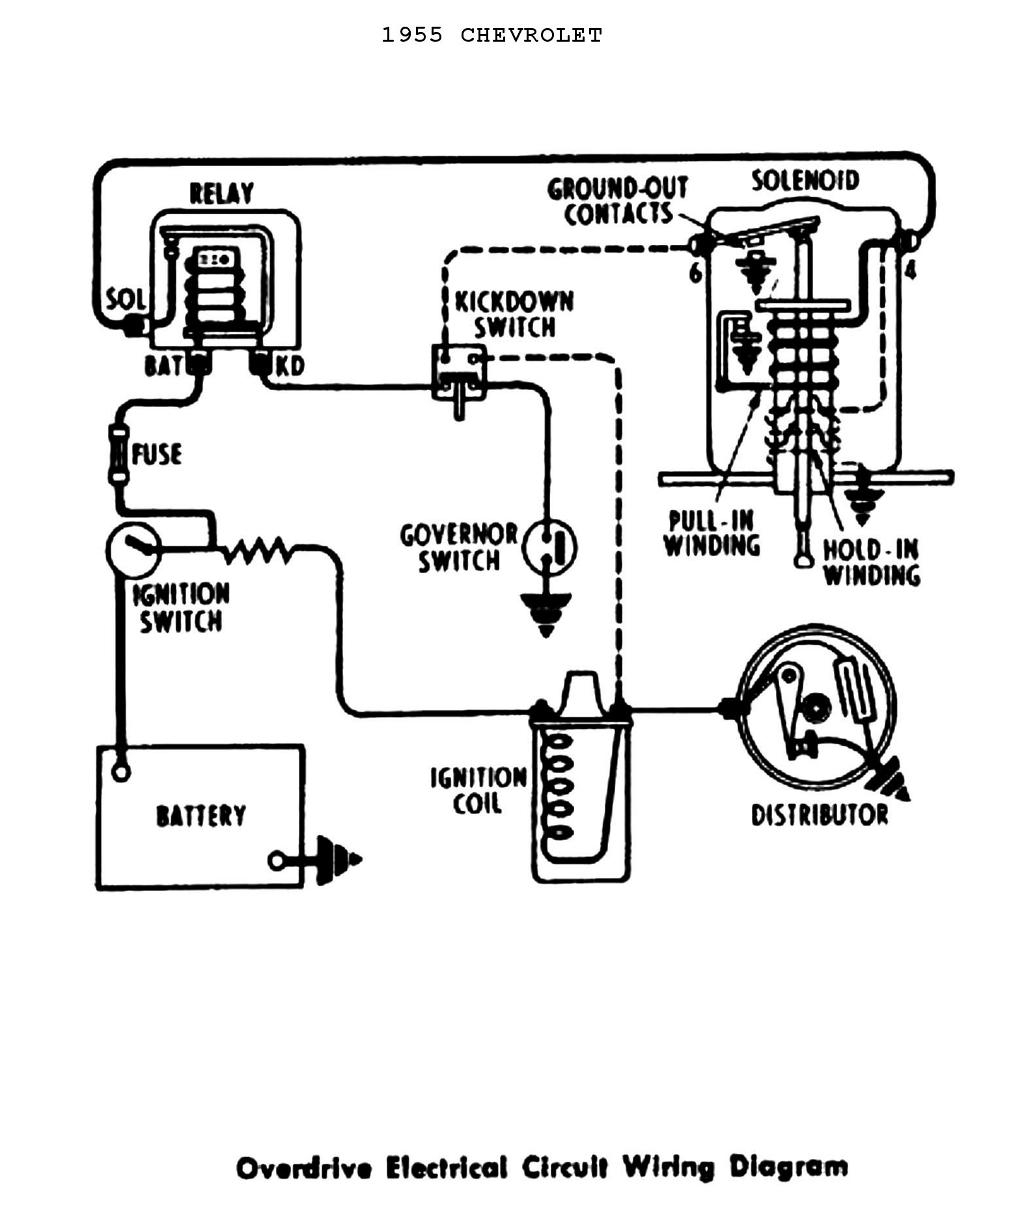 gm ignition switch wiring diagram for ez